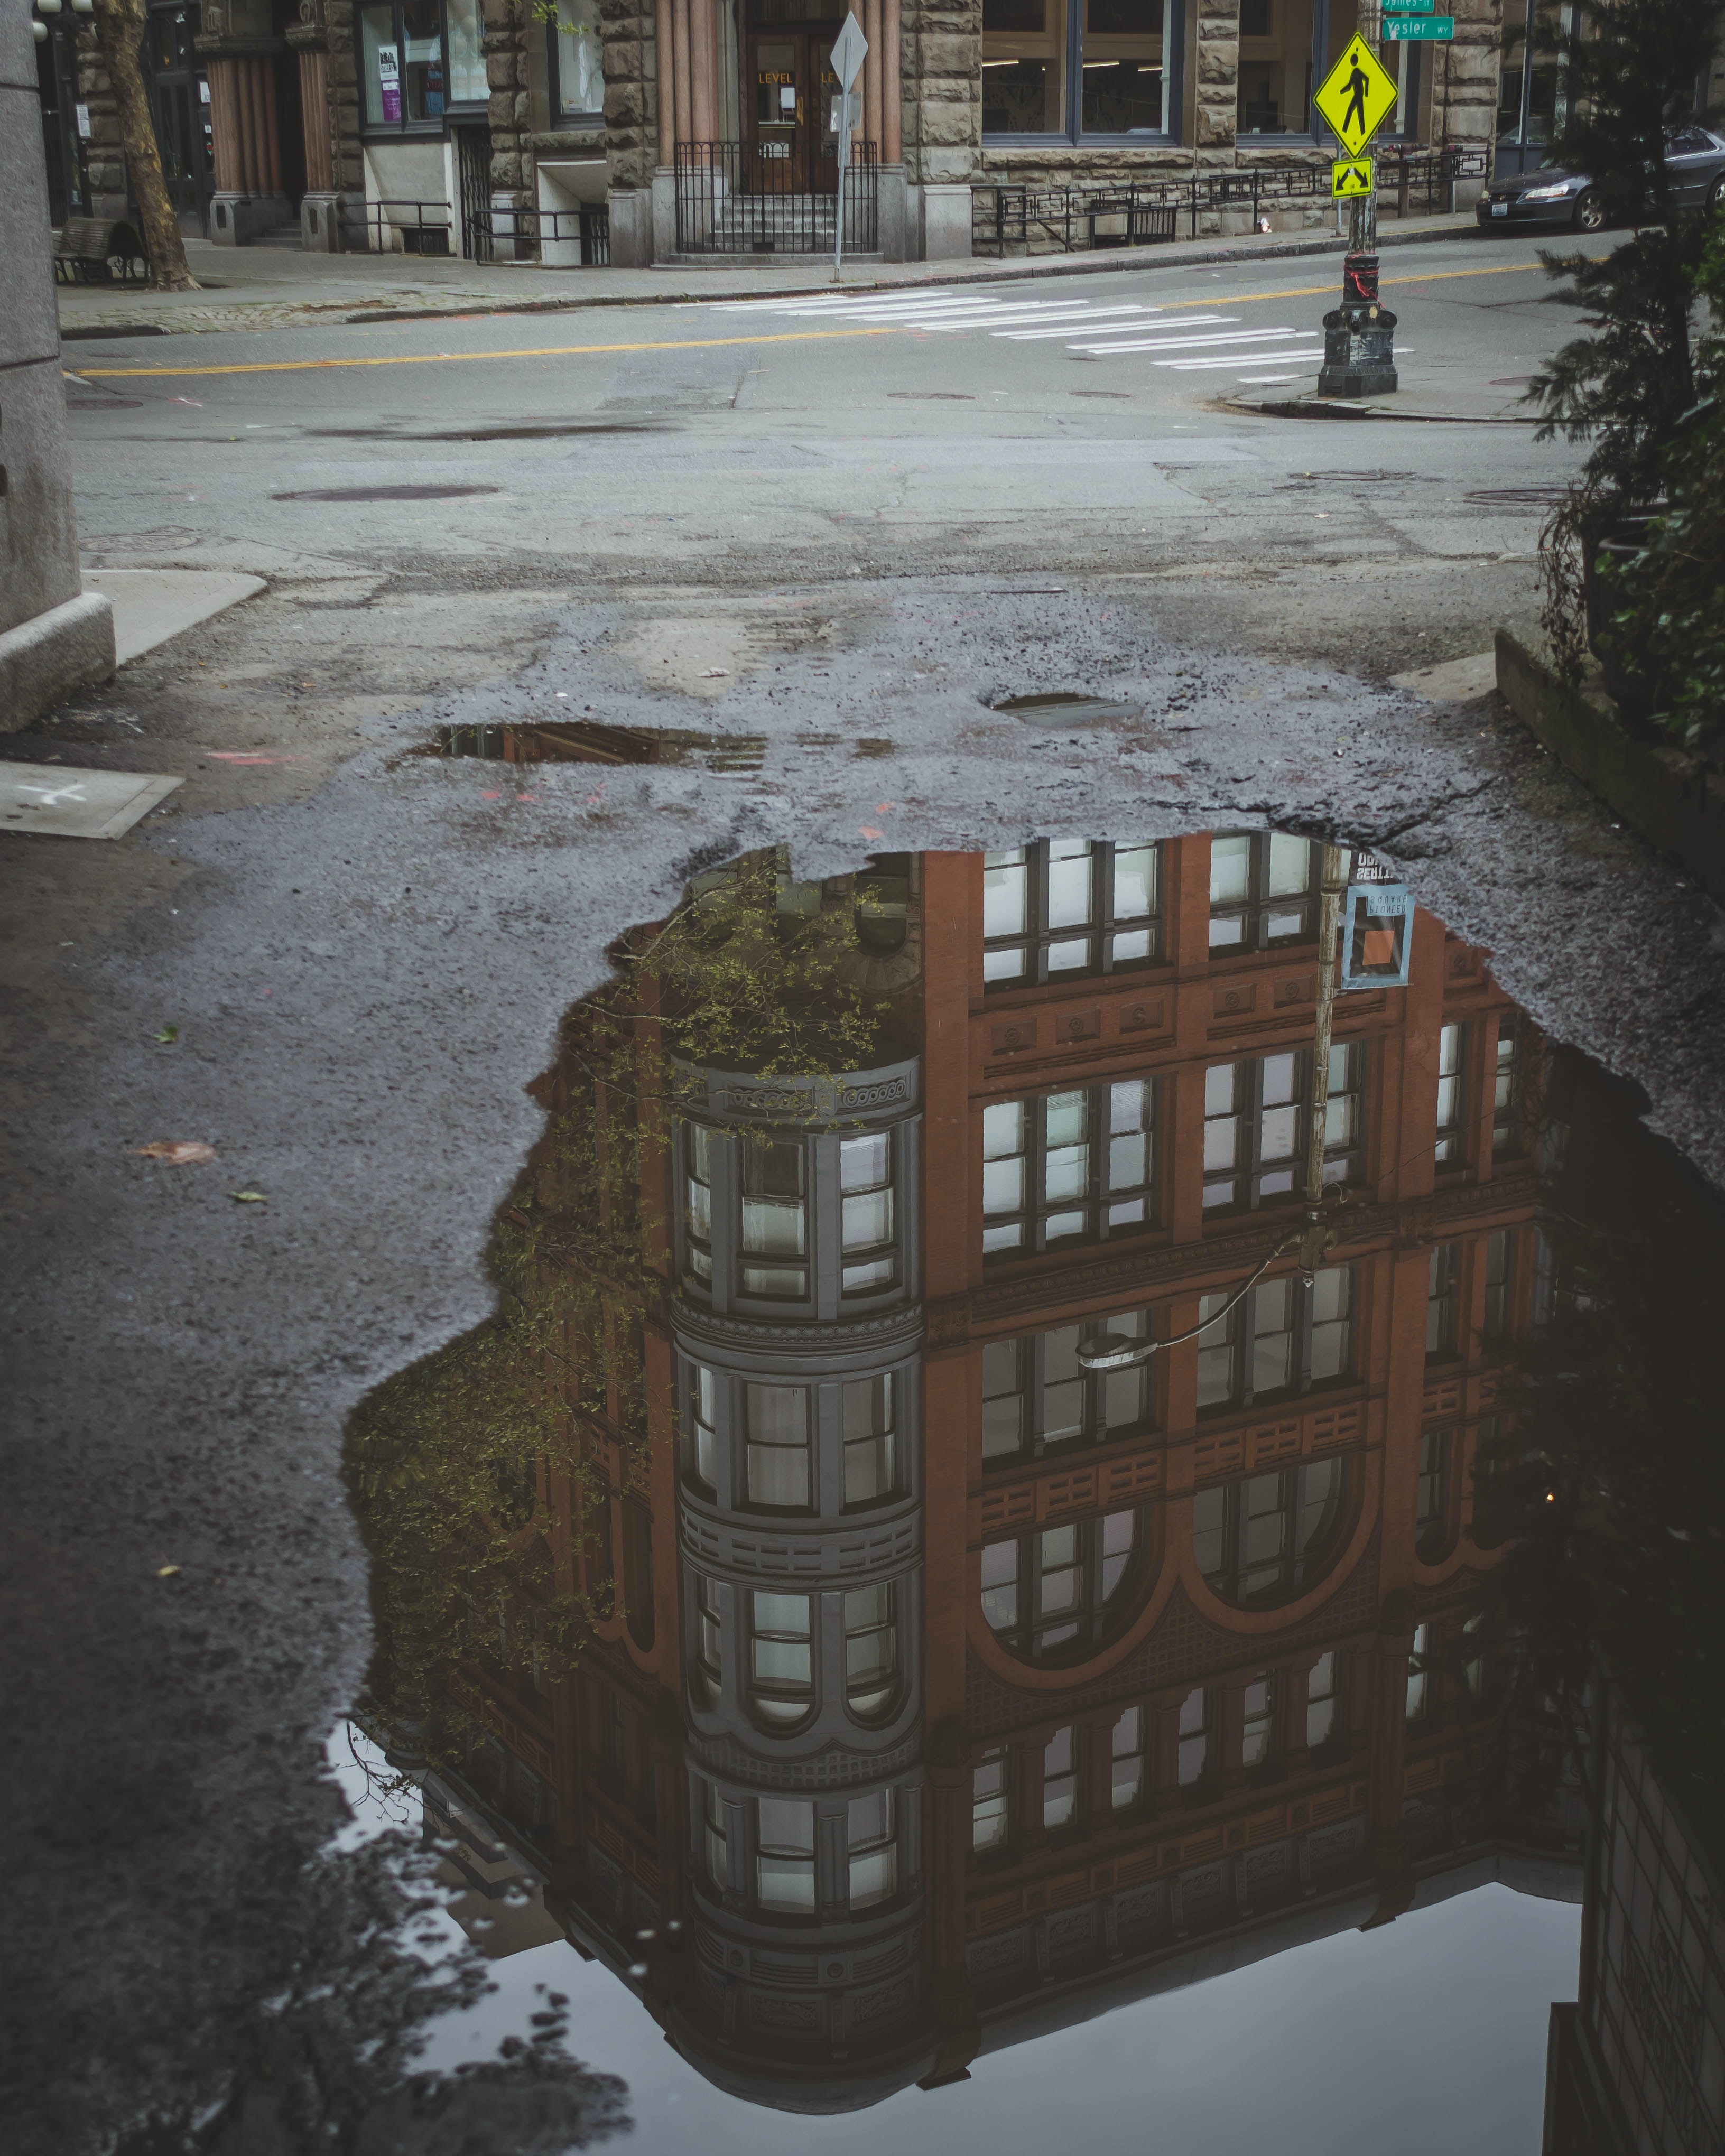 brown concrete building reflects on water